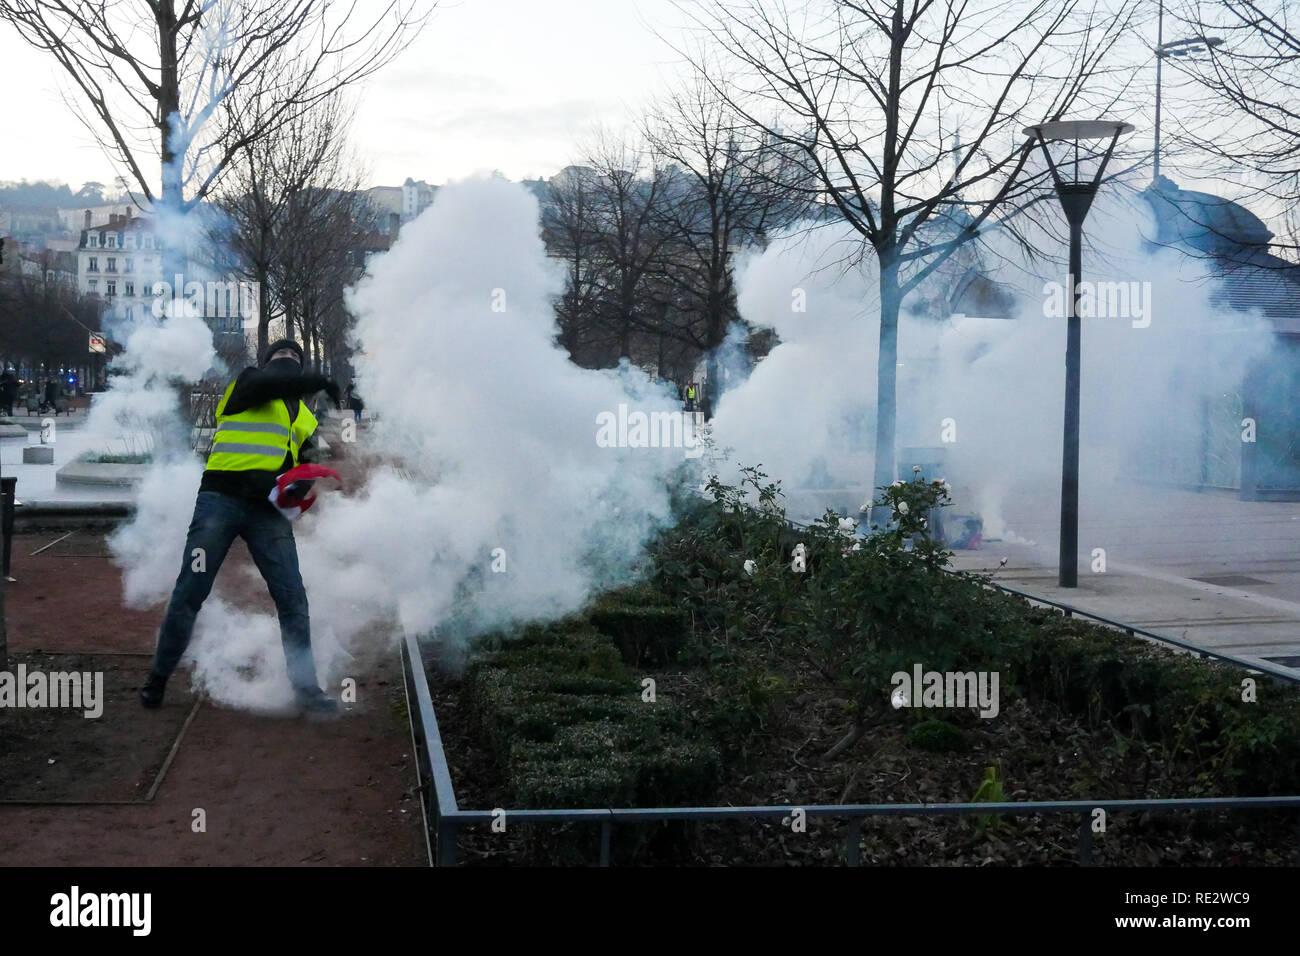 Lyon, France, January 19th 2019: Yellow jackets are seen in Lyon (Central-Eastern France) as they take part to the 10th day of protest against french goverment reform projetct. Credit Photo: Serge Mouraret/Alamy Live News - Stock Image